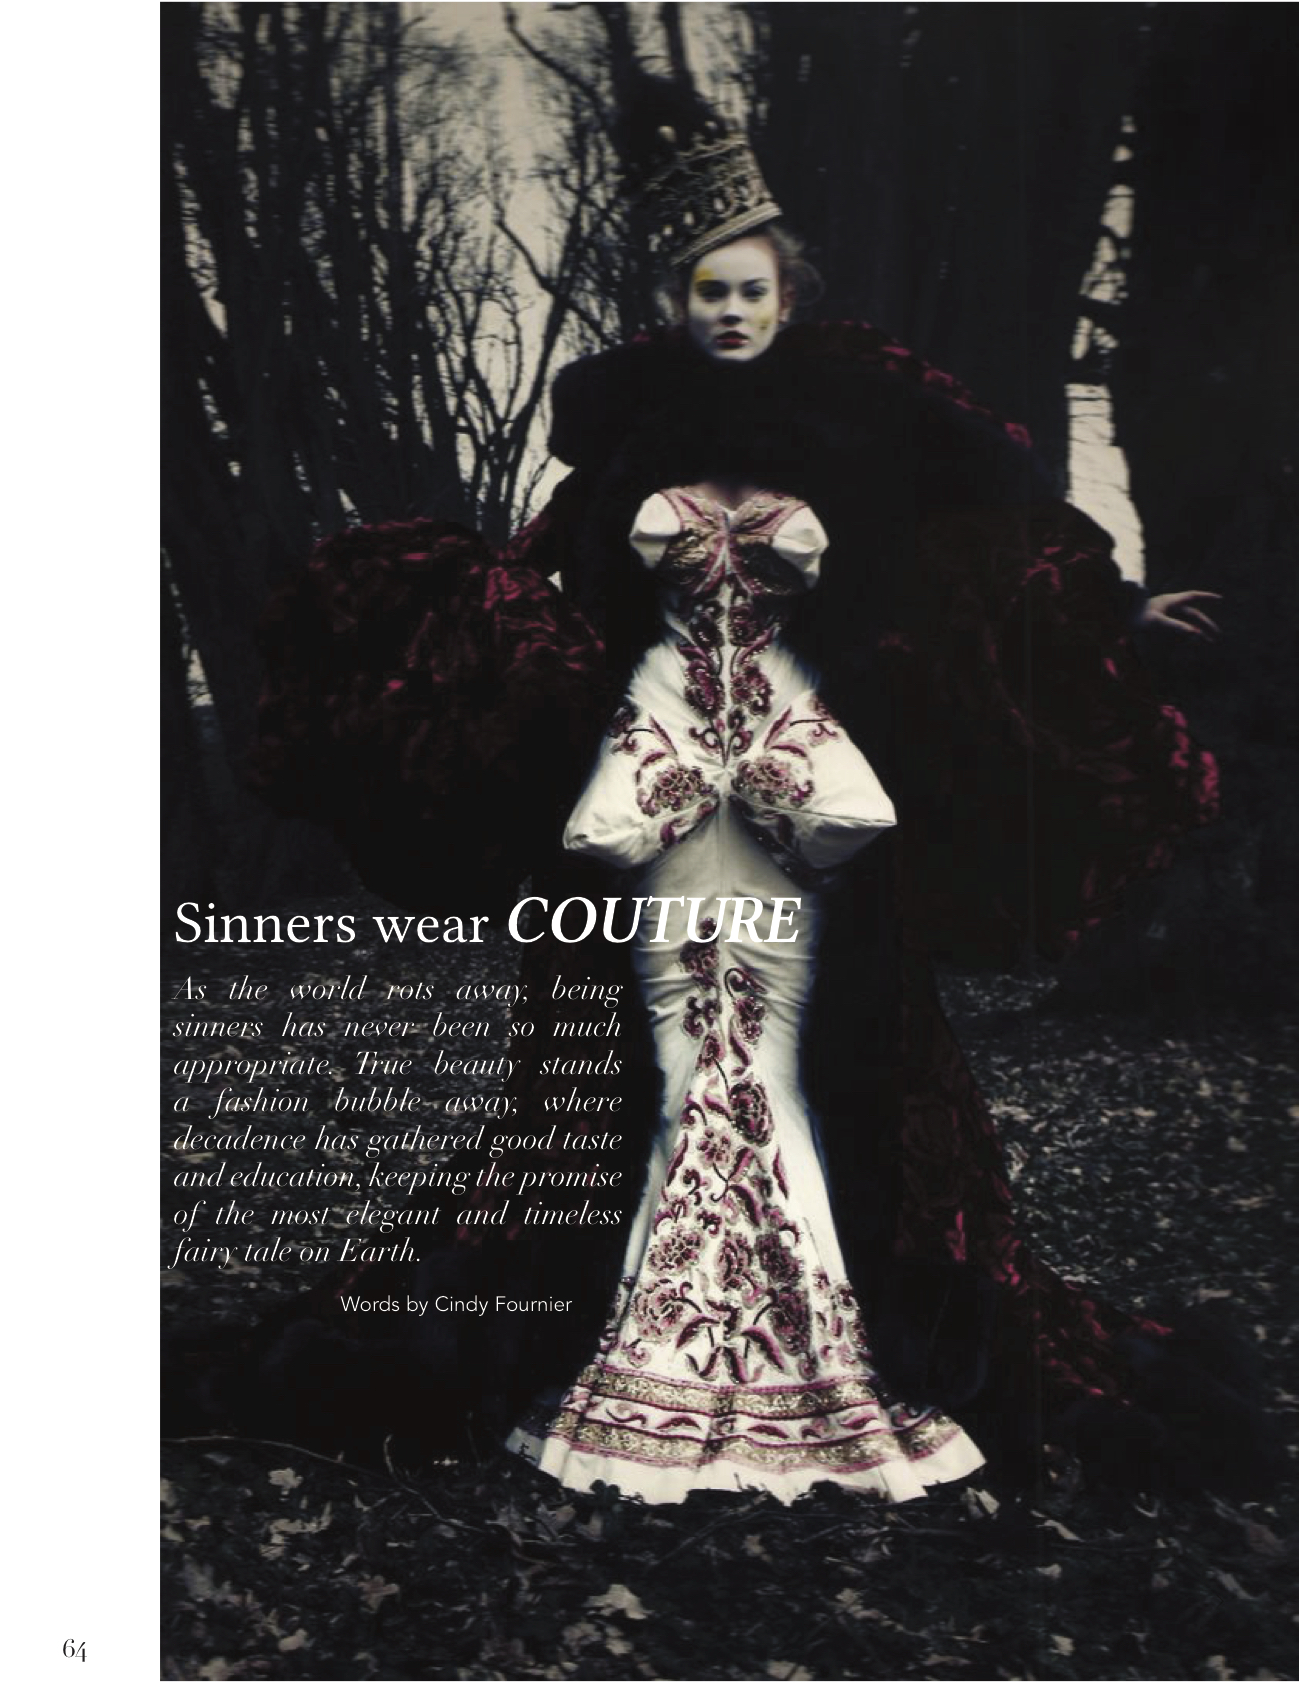 Journalism_Sinners-wear-couture_Fournier-1